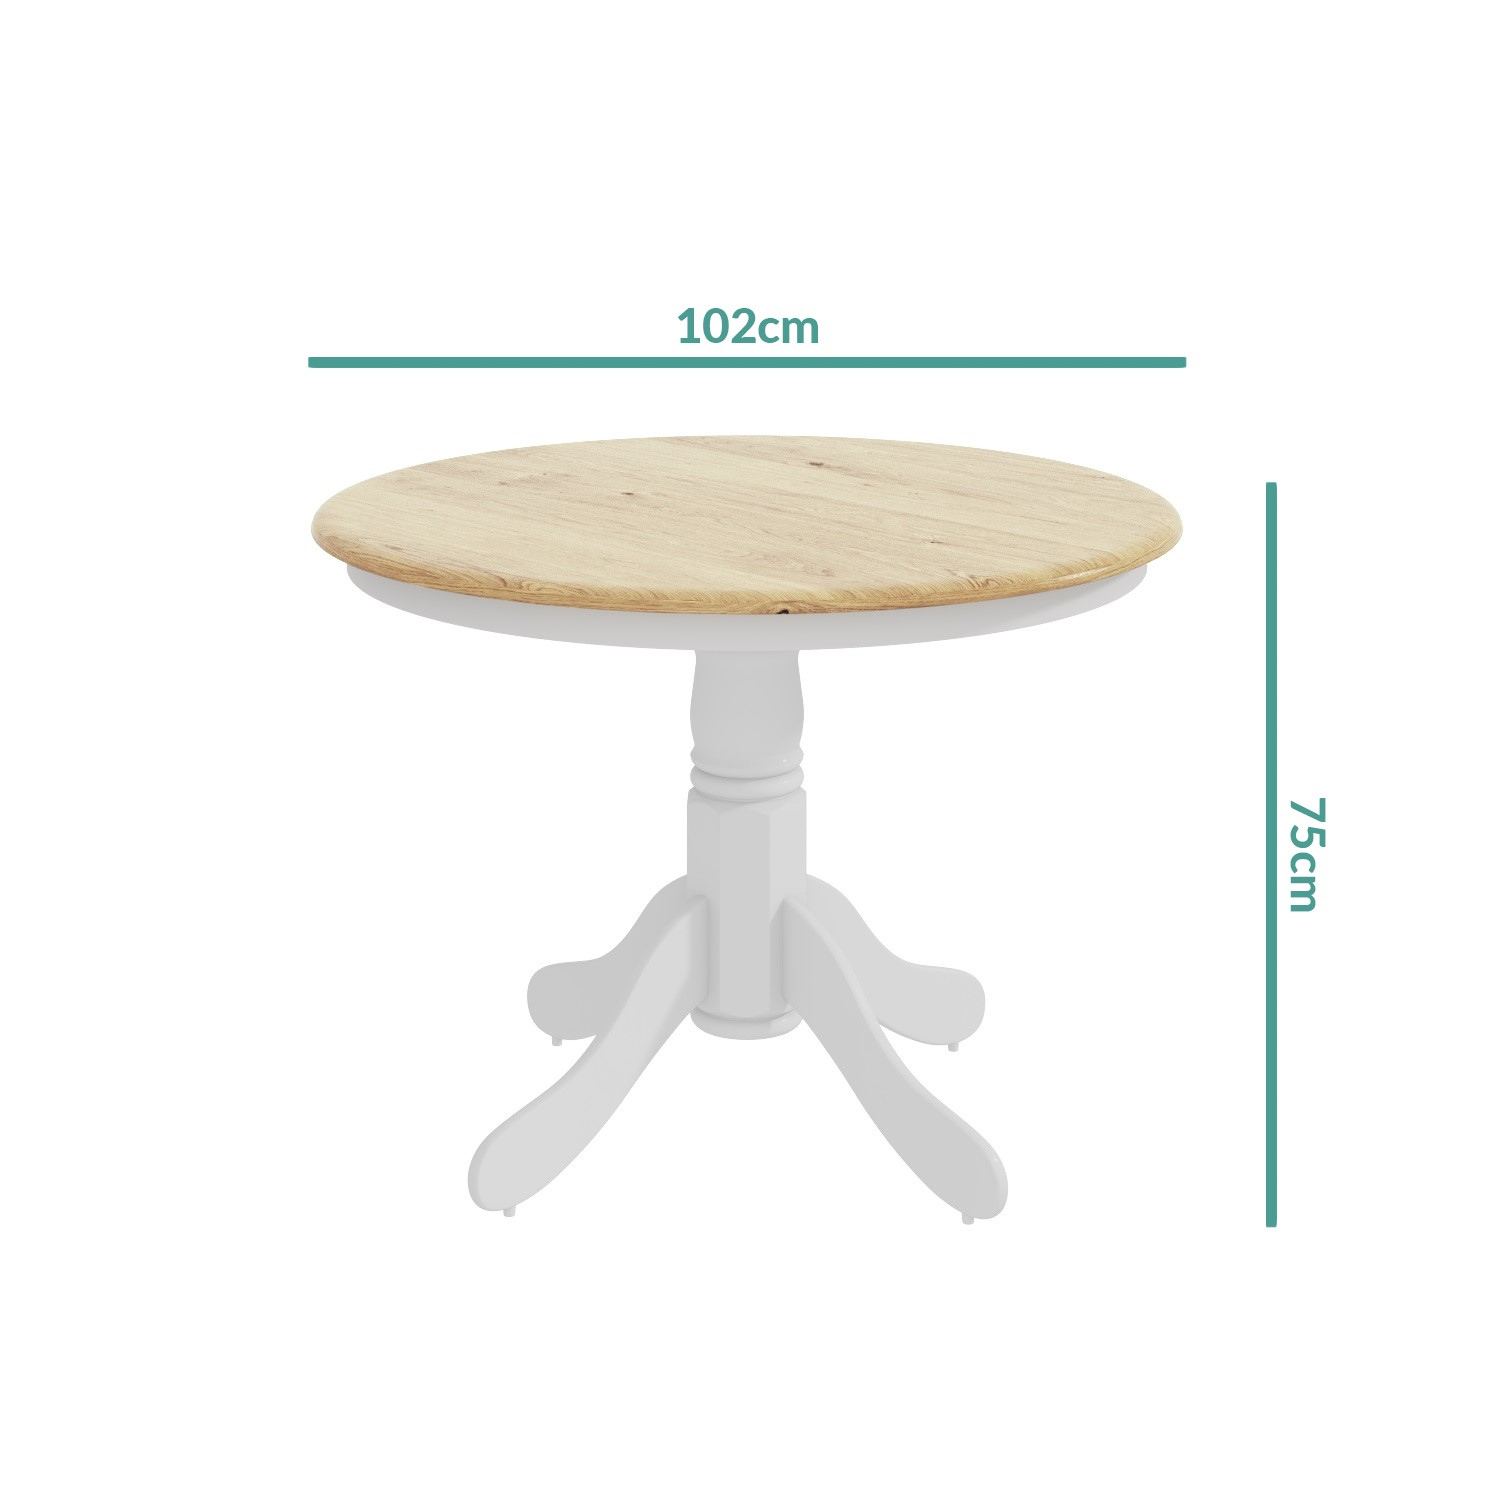 Wood Round Dining Table: Round Wooden Dining Table In White/Natural